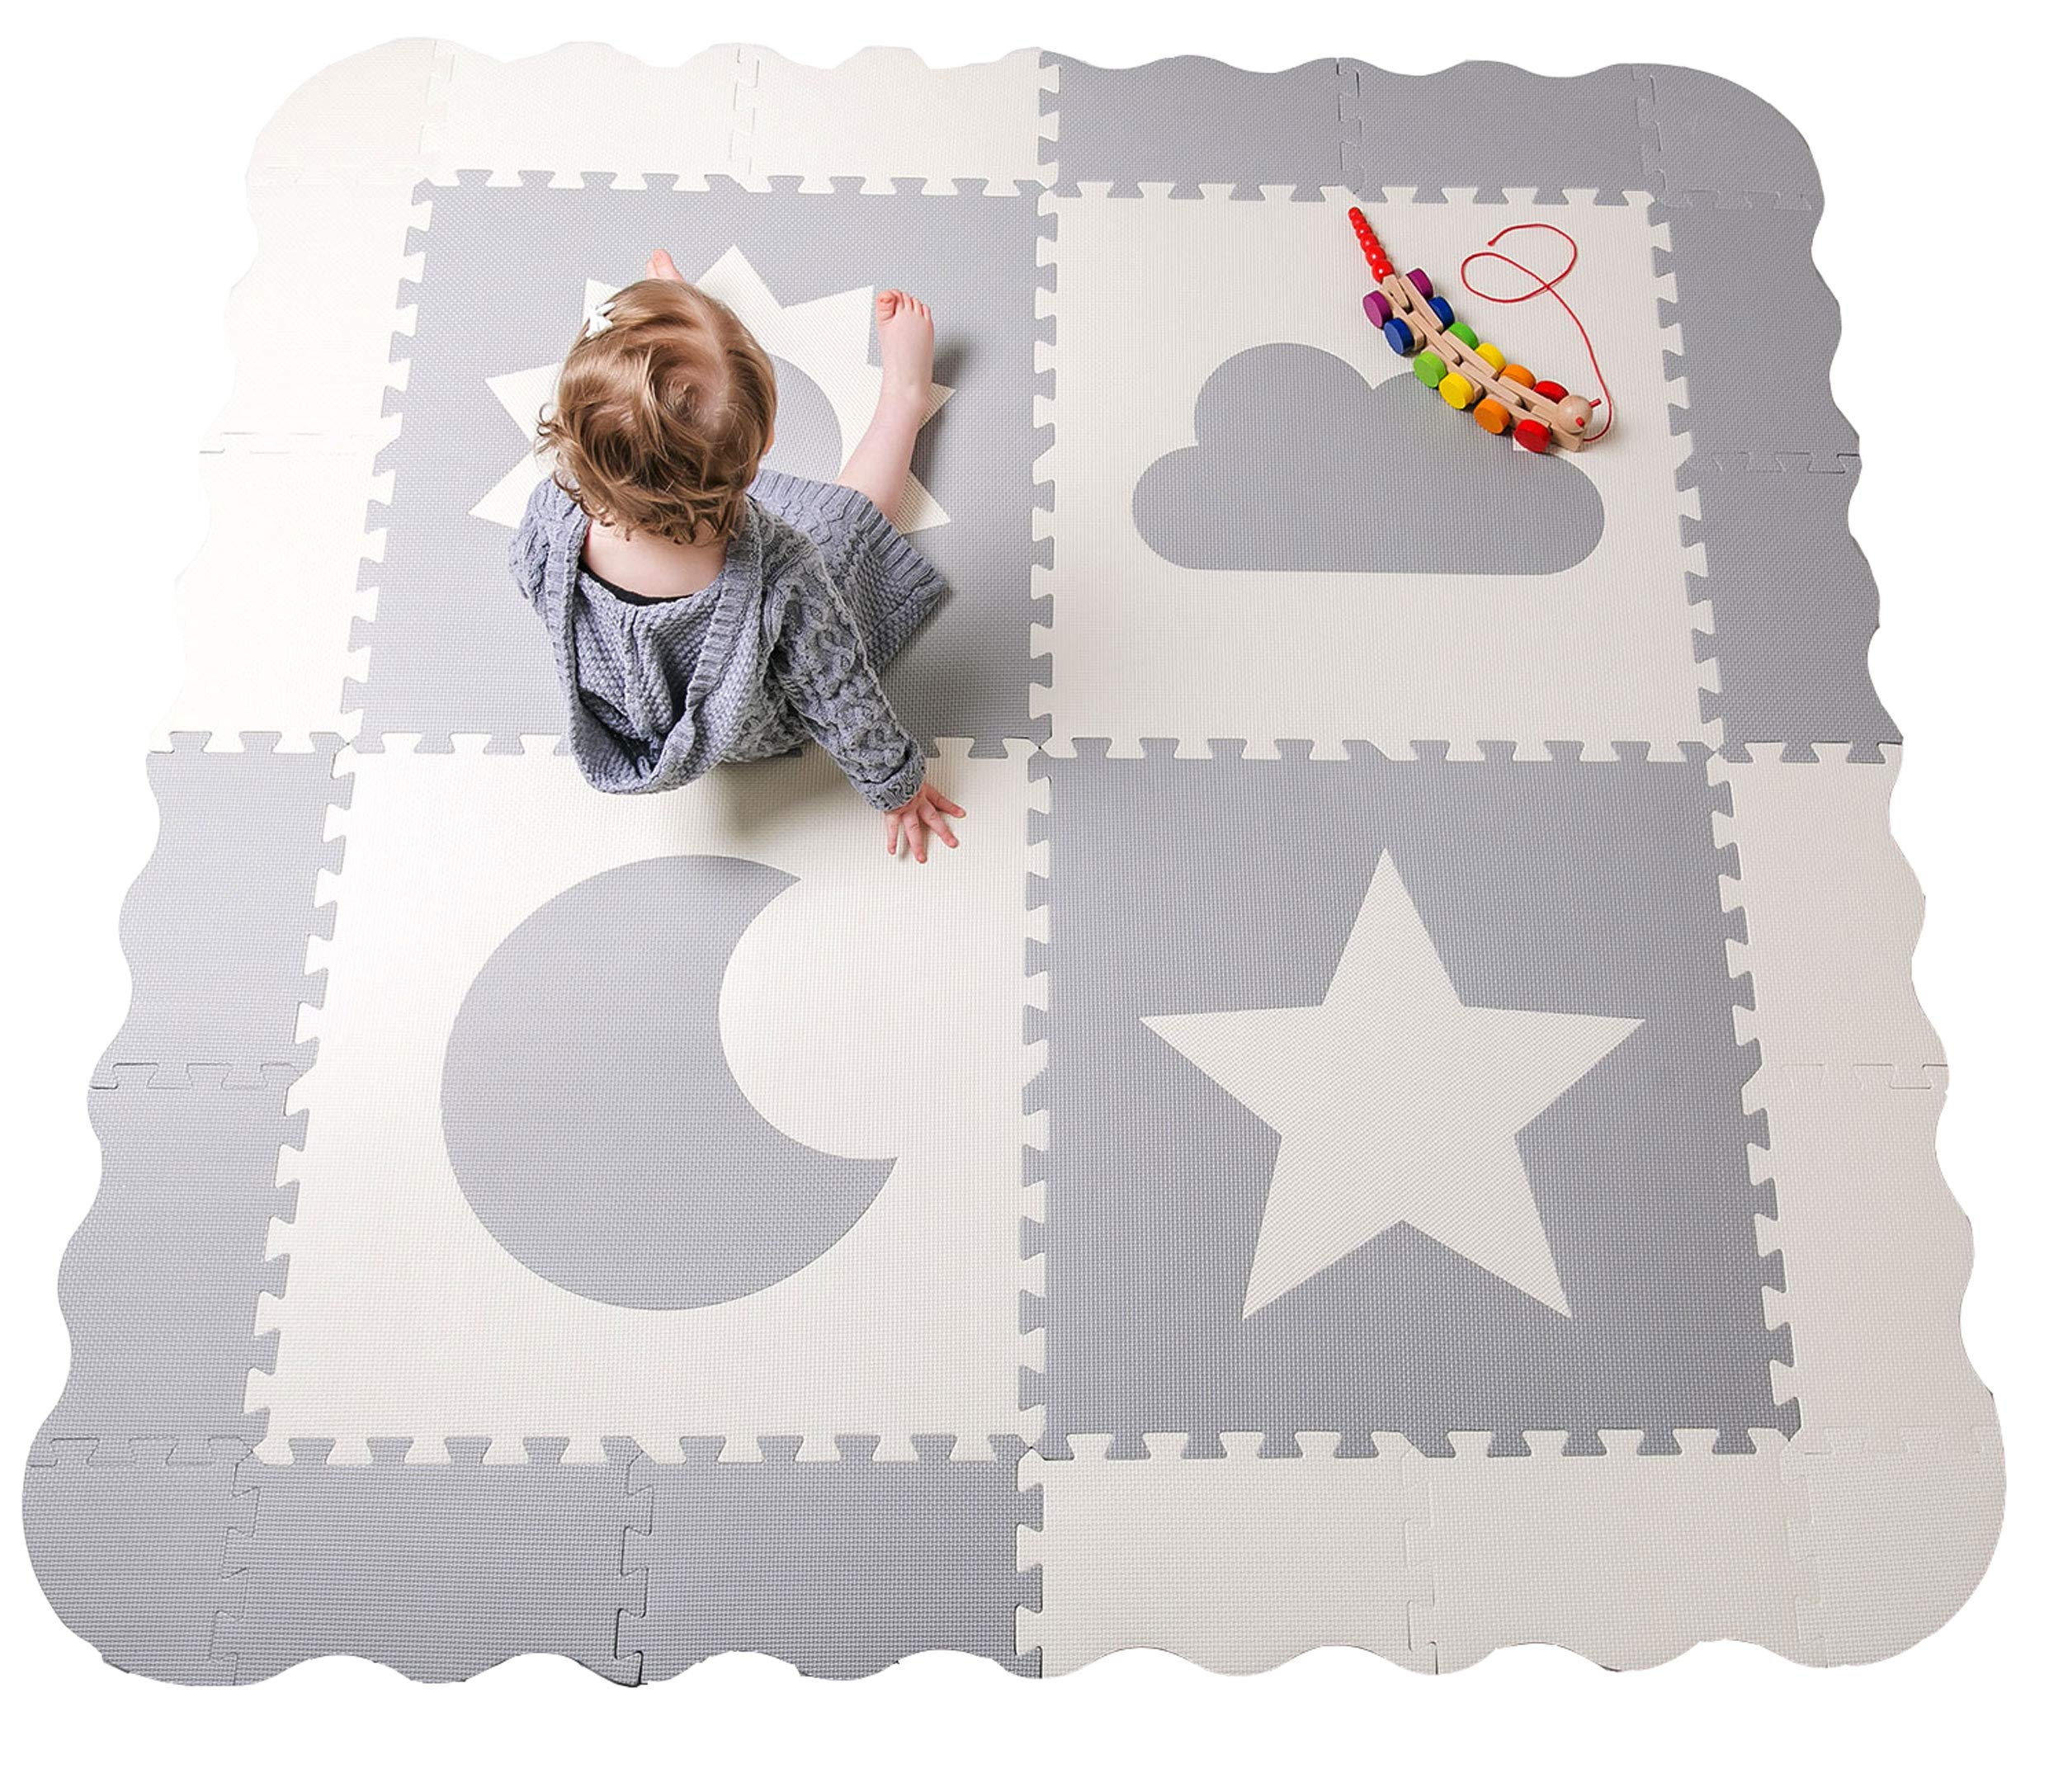 """Baby Play Mat Tiles - 61"""" x 61"""" Extra Large, Non Toxic Foam Baby Floor Mat - Grey & White Interlocking Playroom & Nursery Playmat - Safe & Protective for Infants & Toddlers (Grey)"""